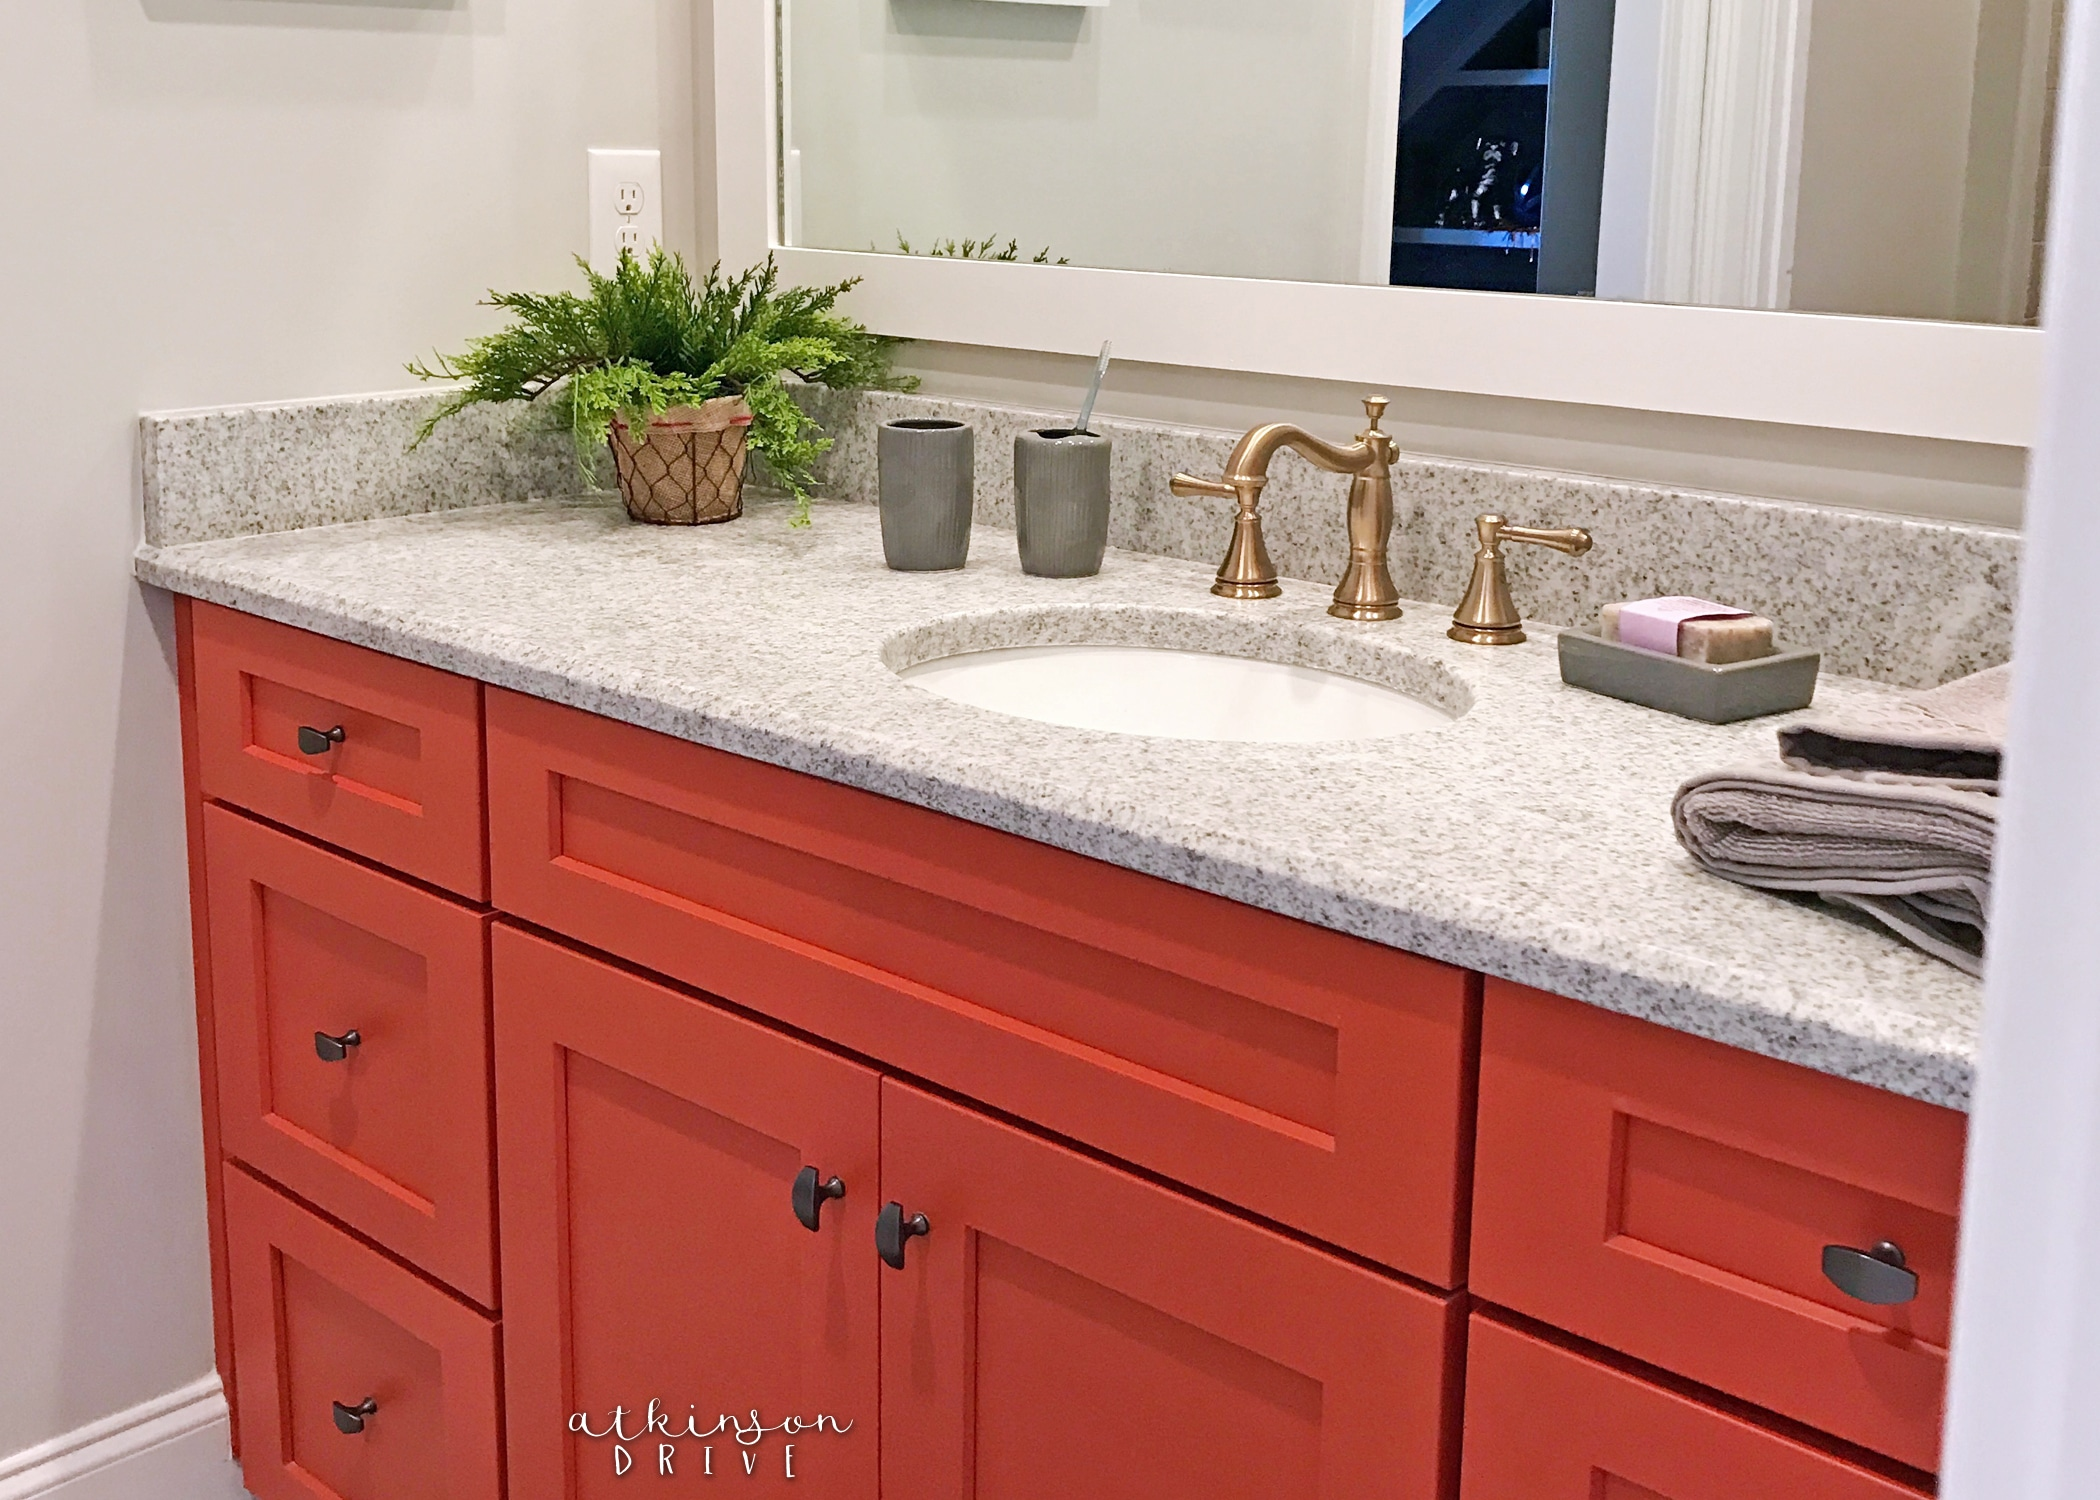 Bathroom with bright coral shaker style cabinets and bronze accents /// Woodridge Home Tour by Atkinson Drive